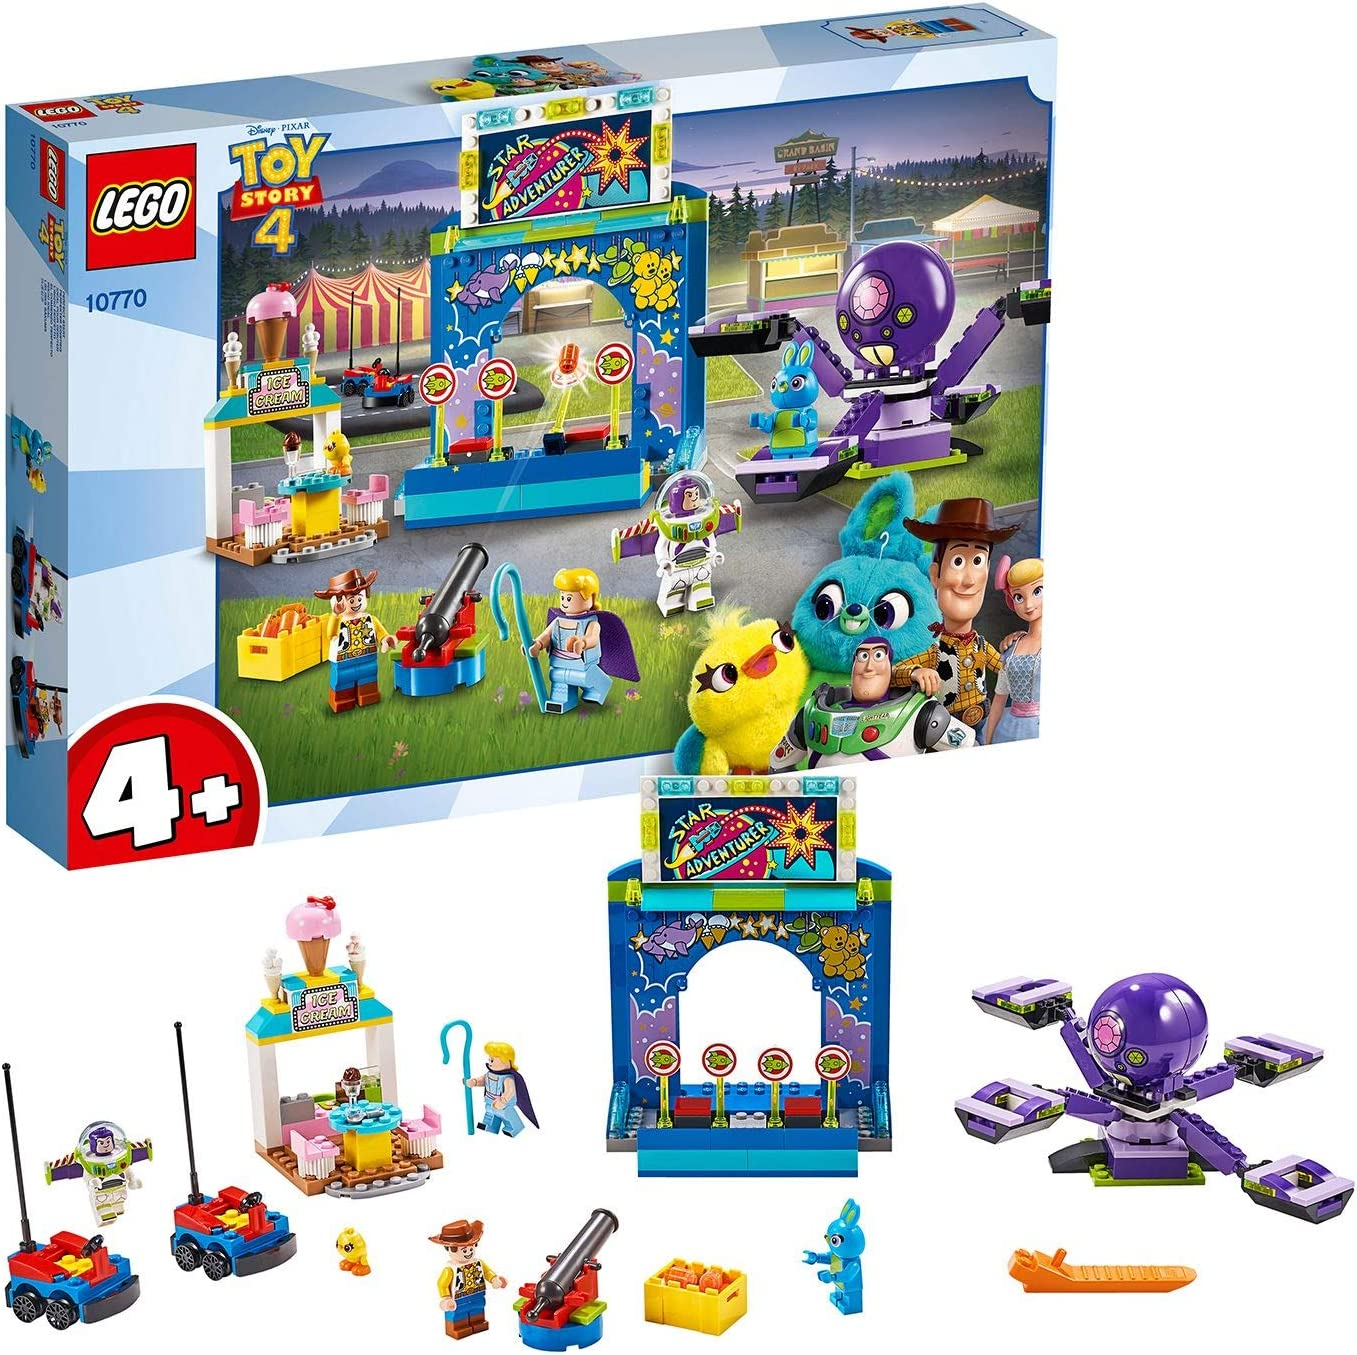 LEGO 10770 4+ Limited Special Price Toy Story 4 Buzz B Mania and Carnival with Woody's Safety trust